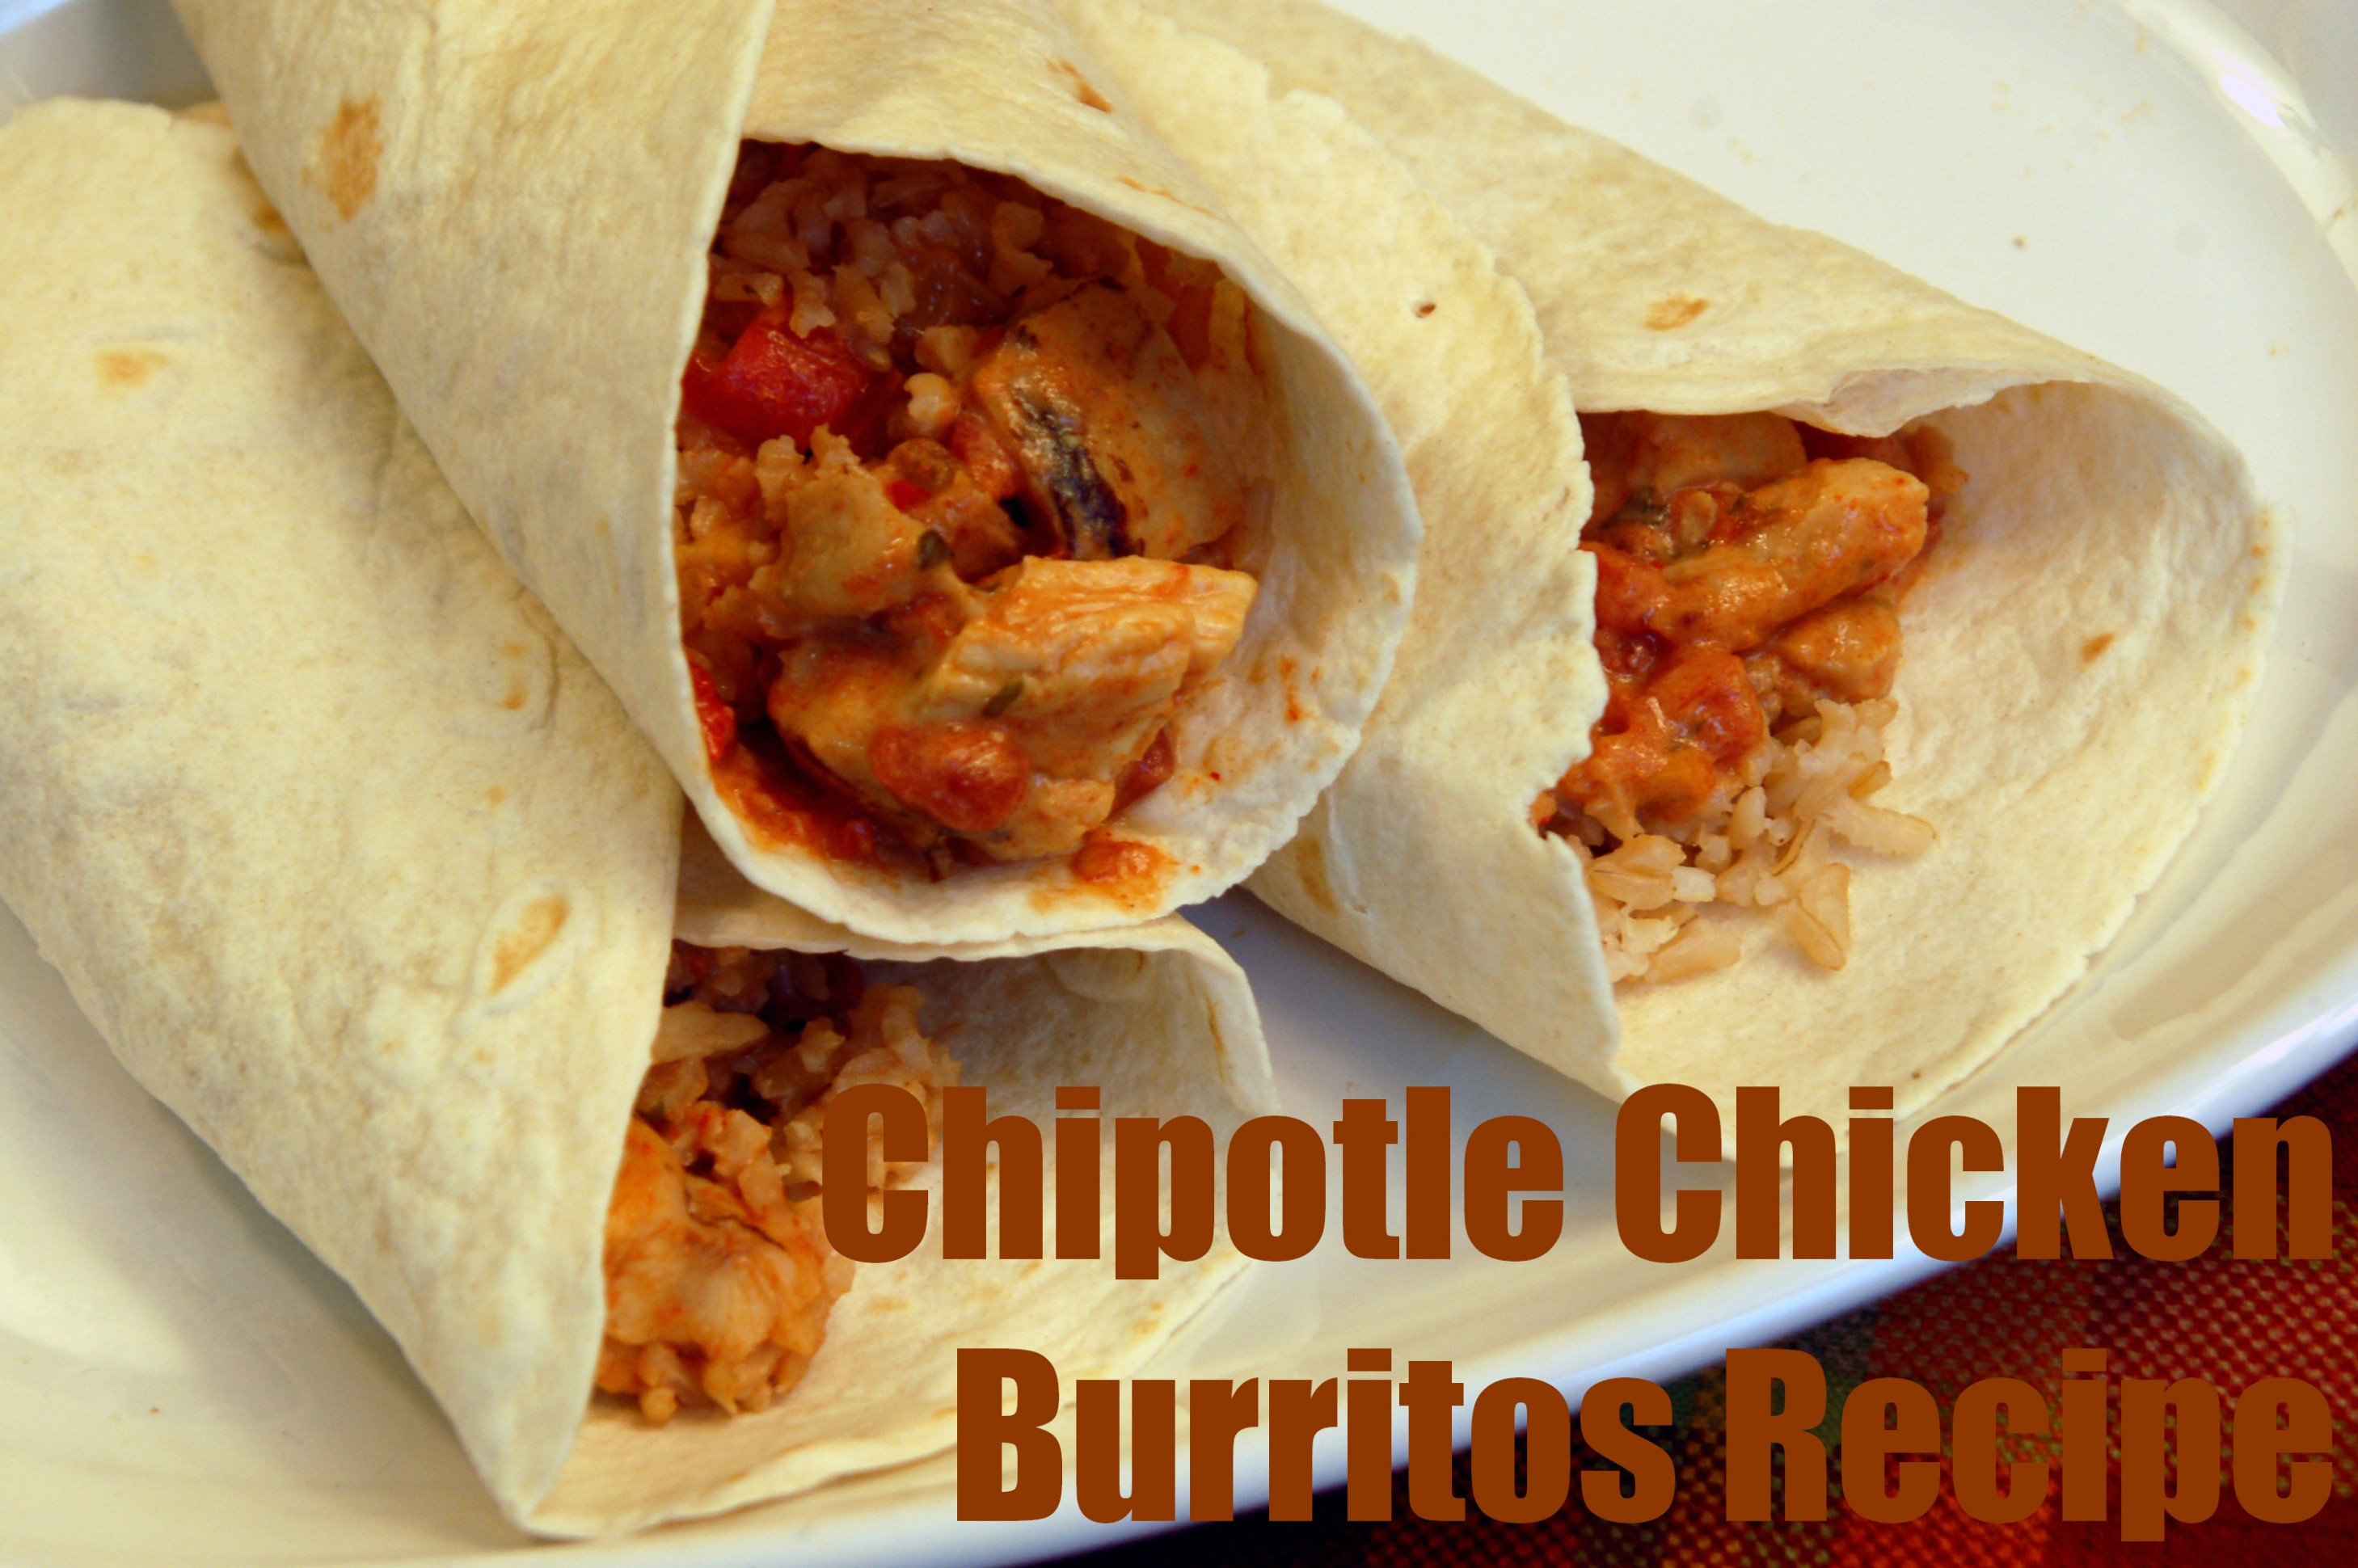 Recipe for Chipotle Chicken Burritos - Horrible Housewife